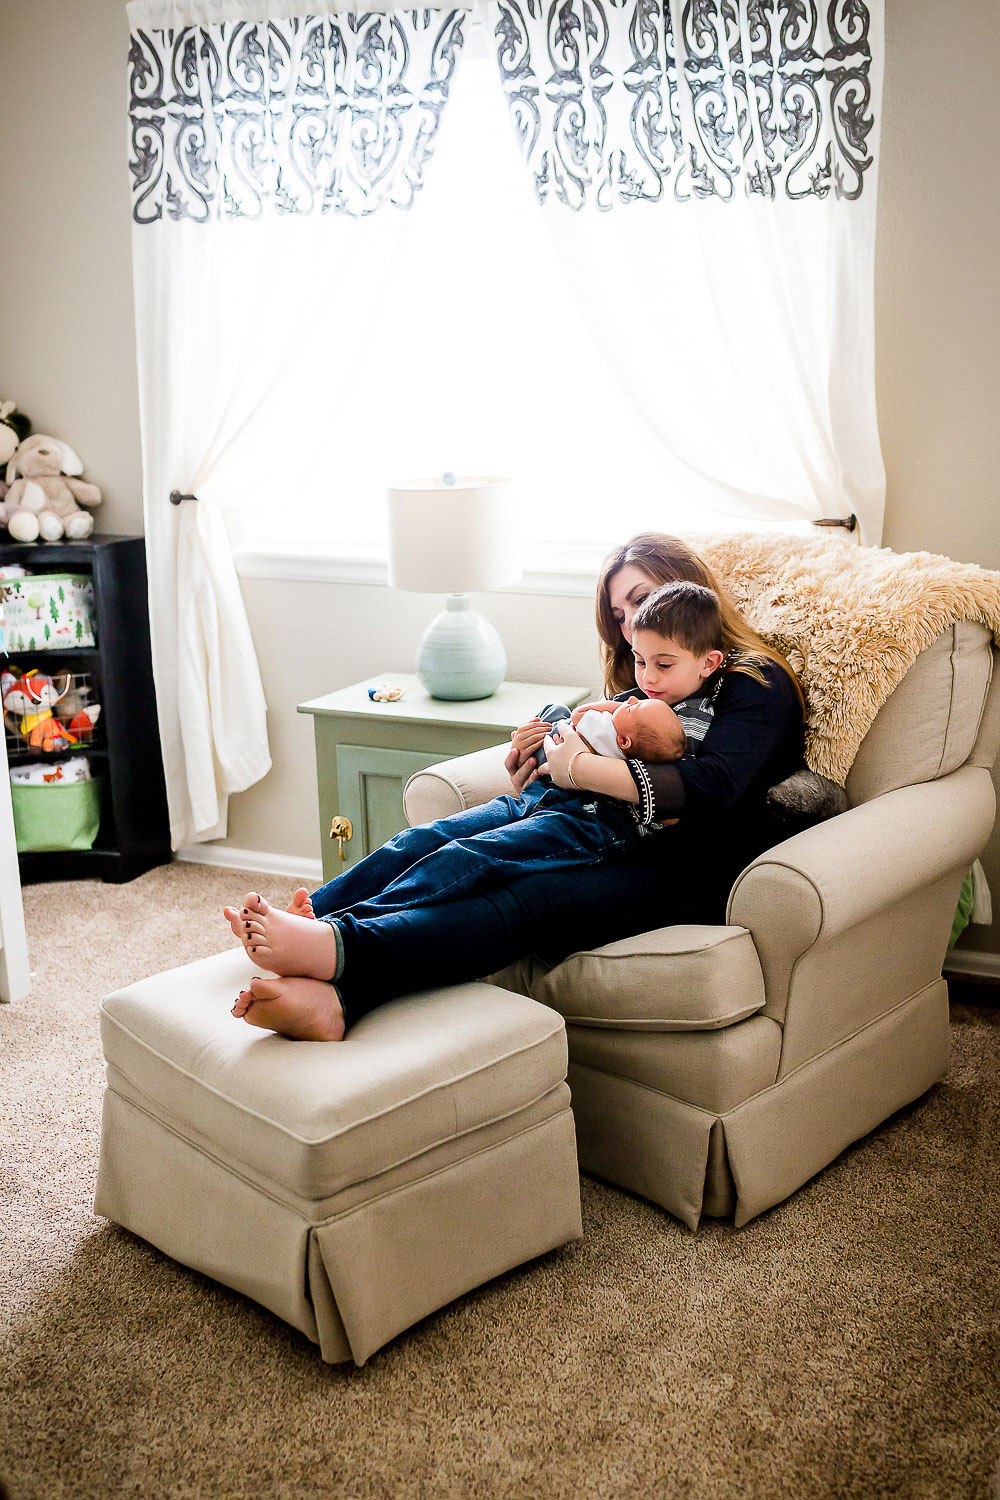 denver_newborn_lifestyle_photographer_kathleen_bracken_photography-7.jpg